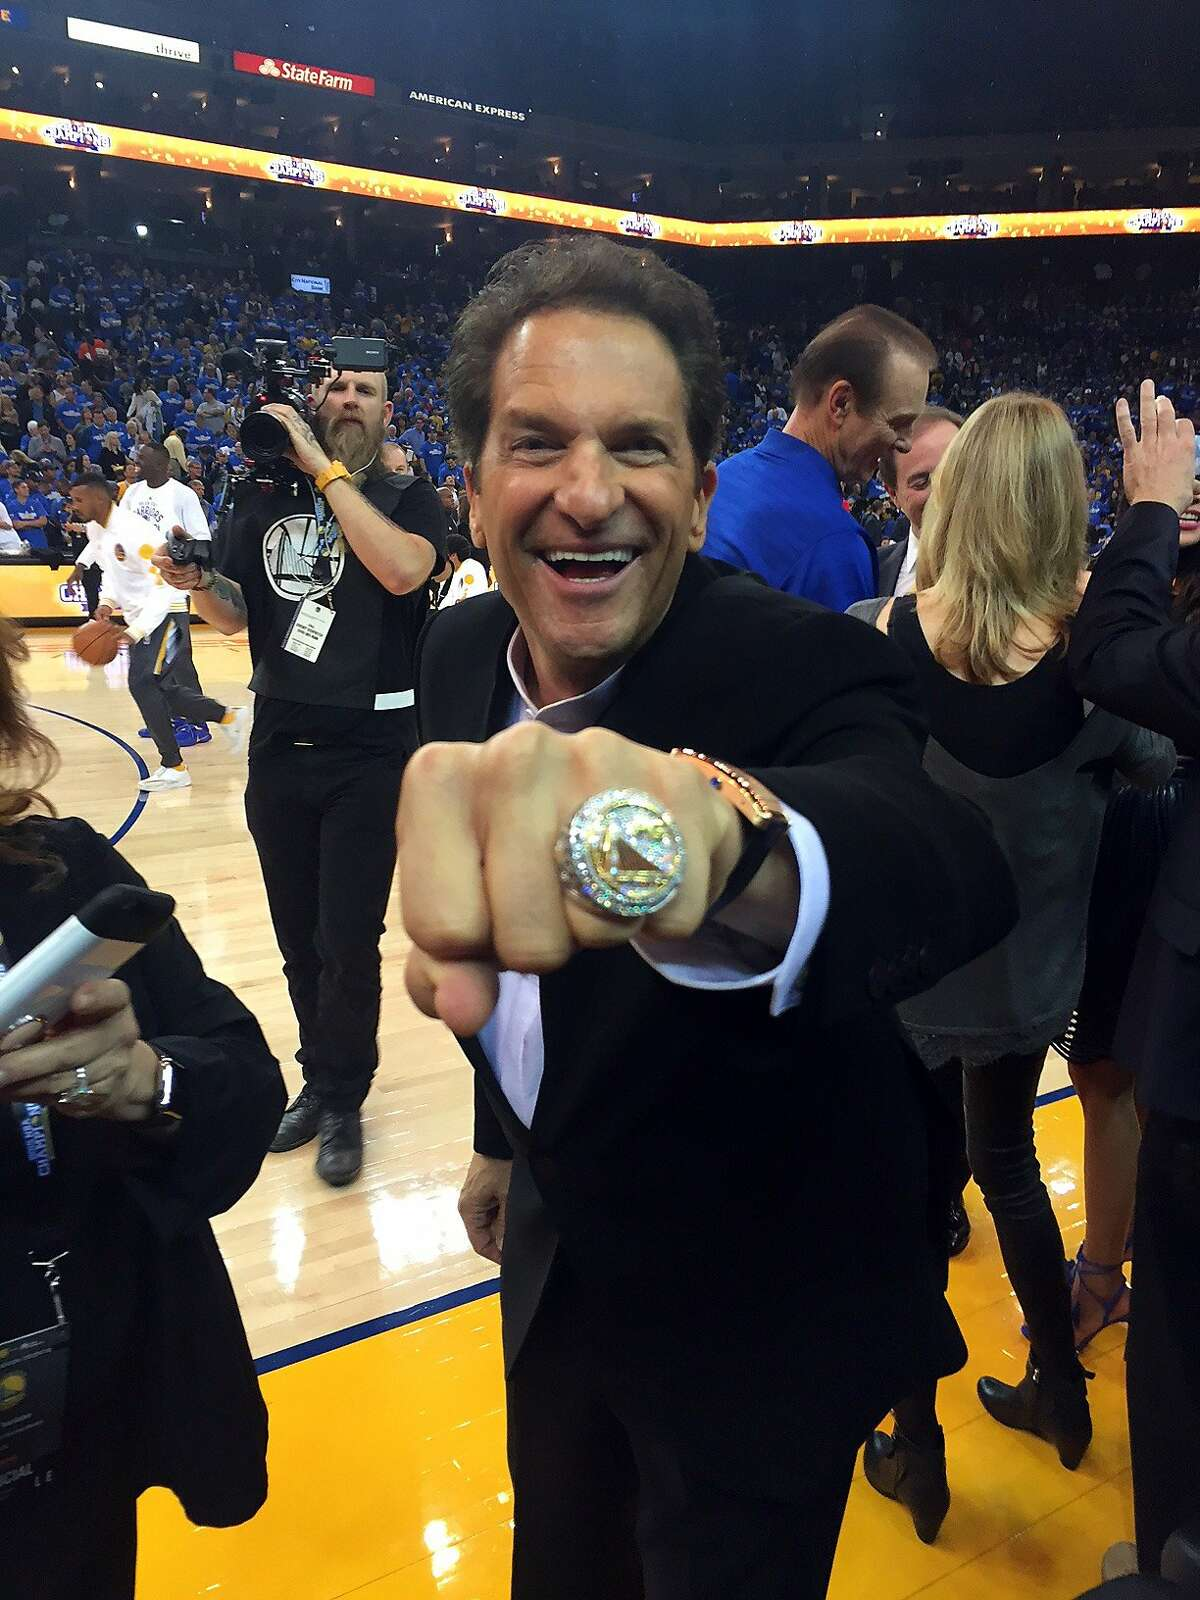 Peter Guber shows off his NBA Championship ring after the ceremony before playing New Orleans Pelicans during NBA game at Oracle Arena in Oakland, Calif., on Tuesday, October 27, 2015.